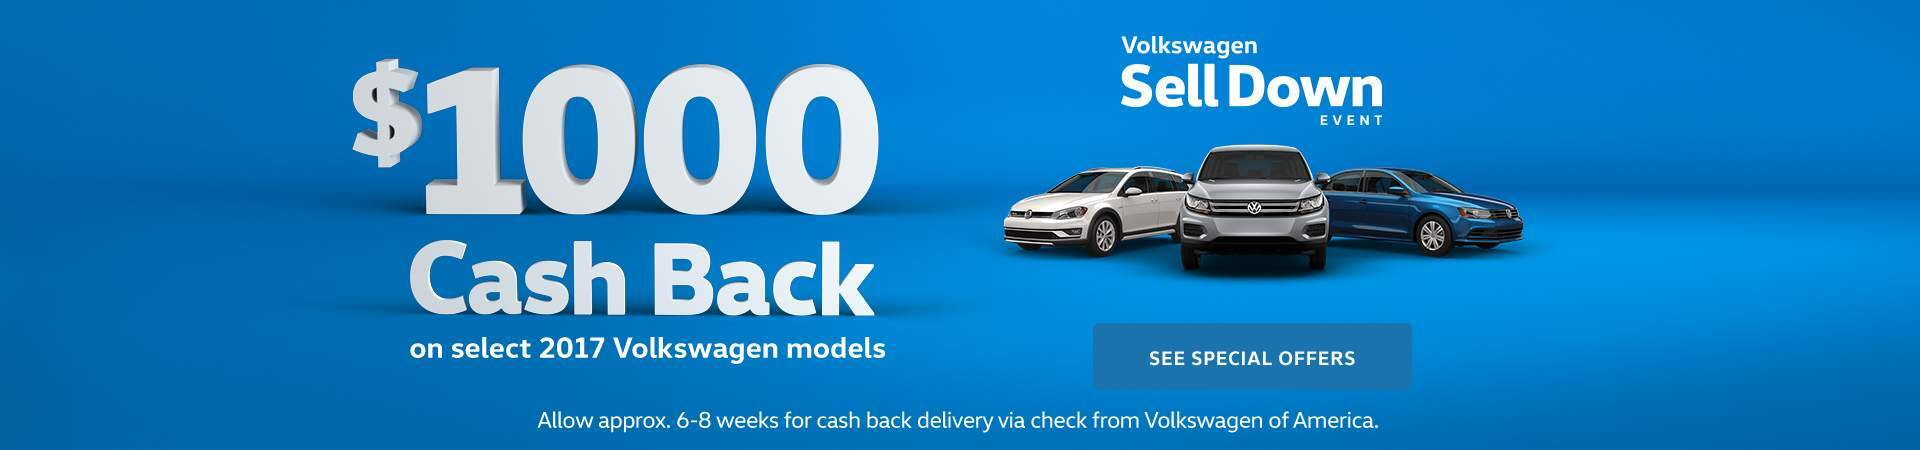 Volkswagen Sell Down Event